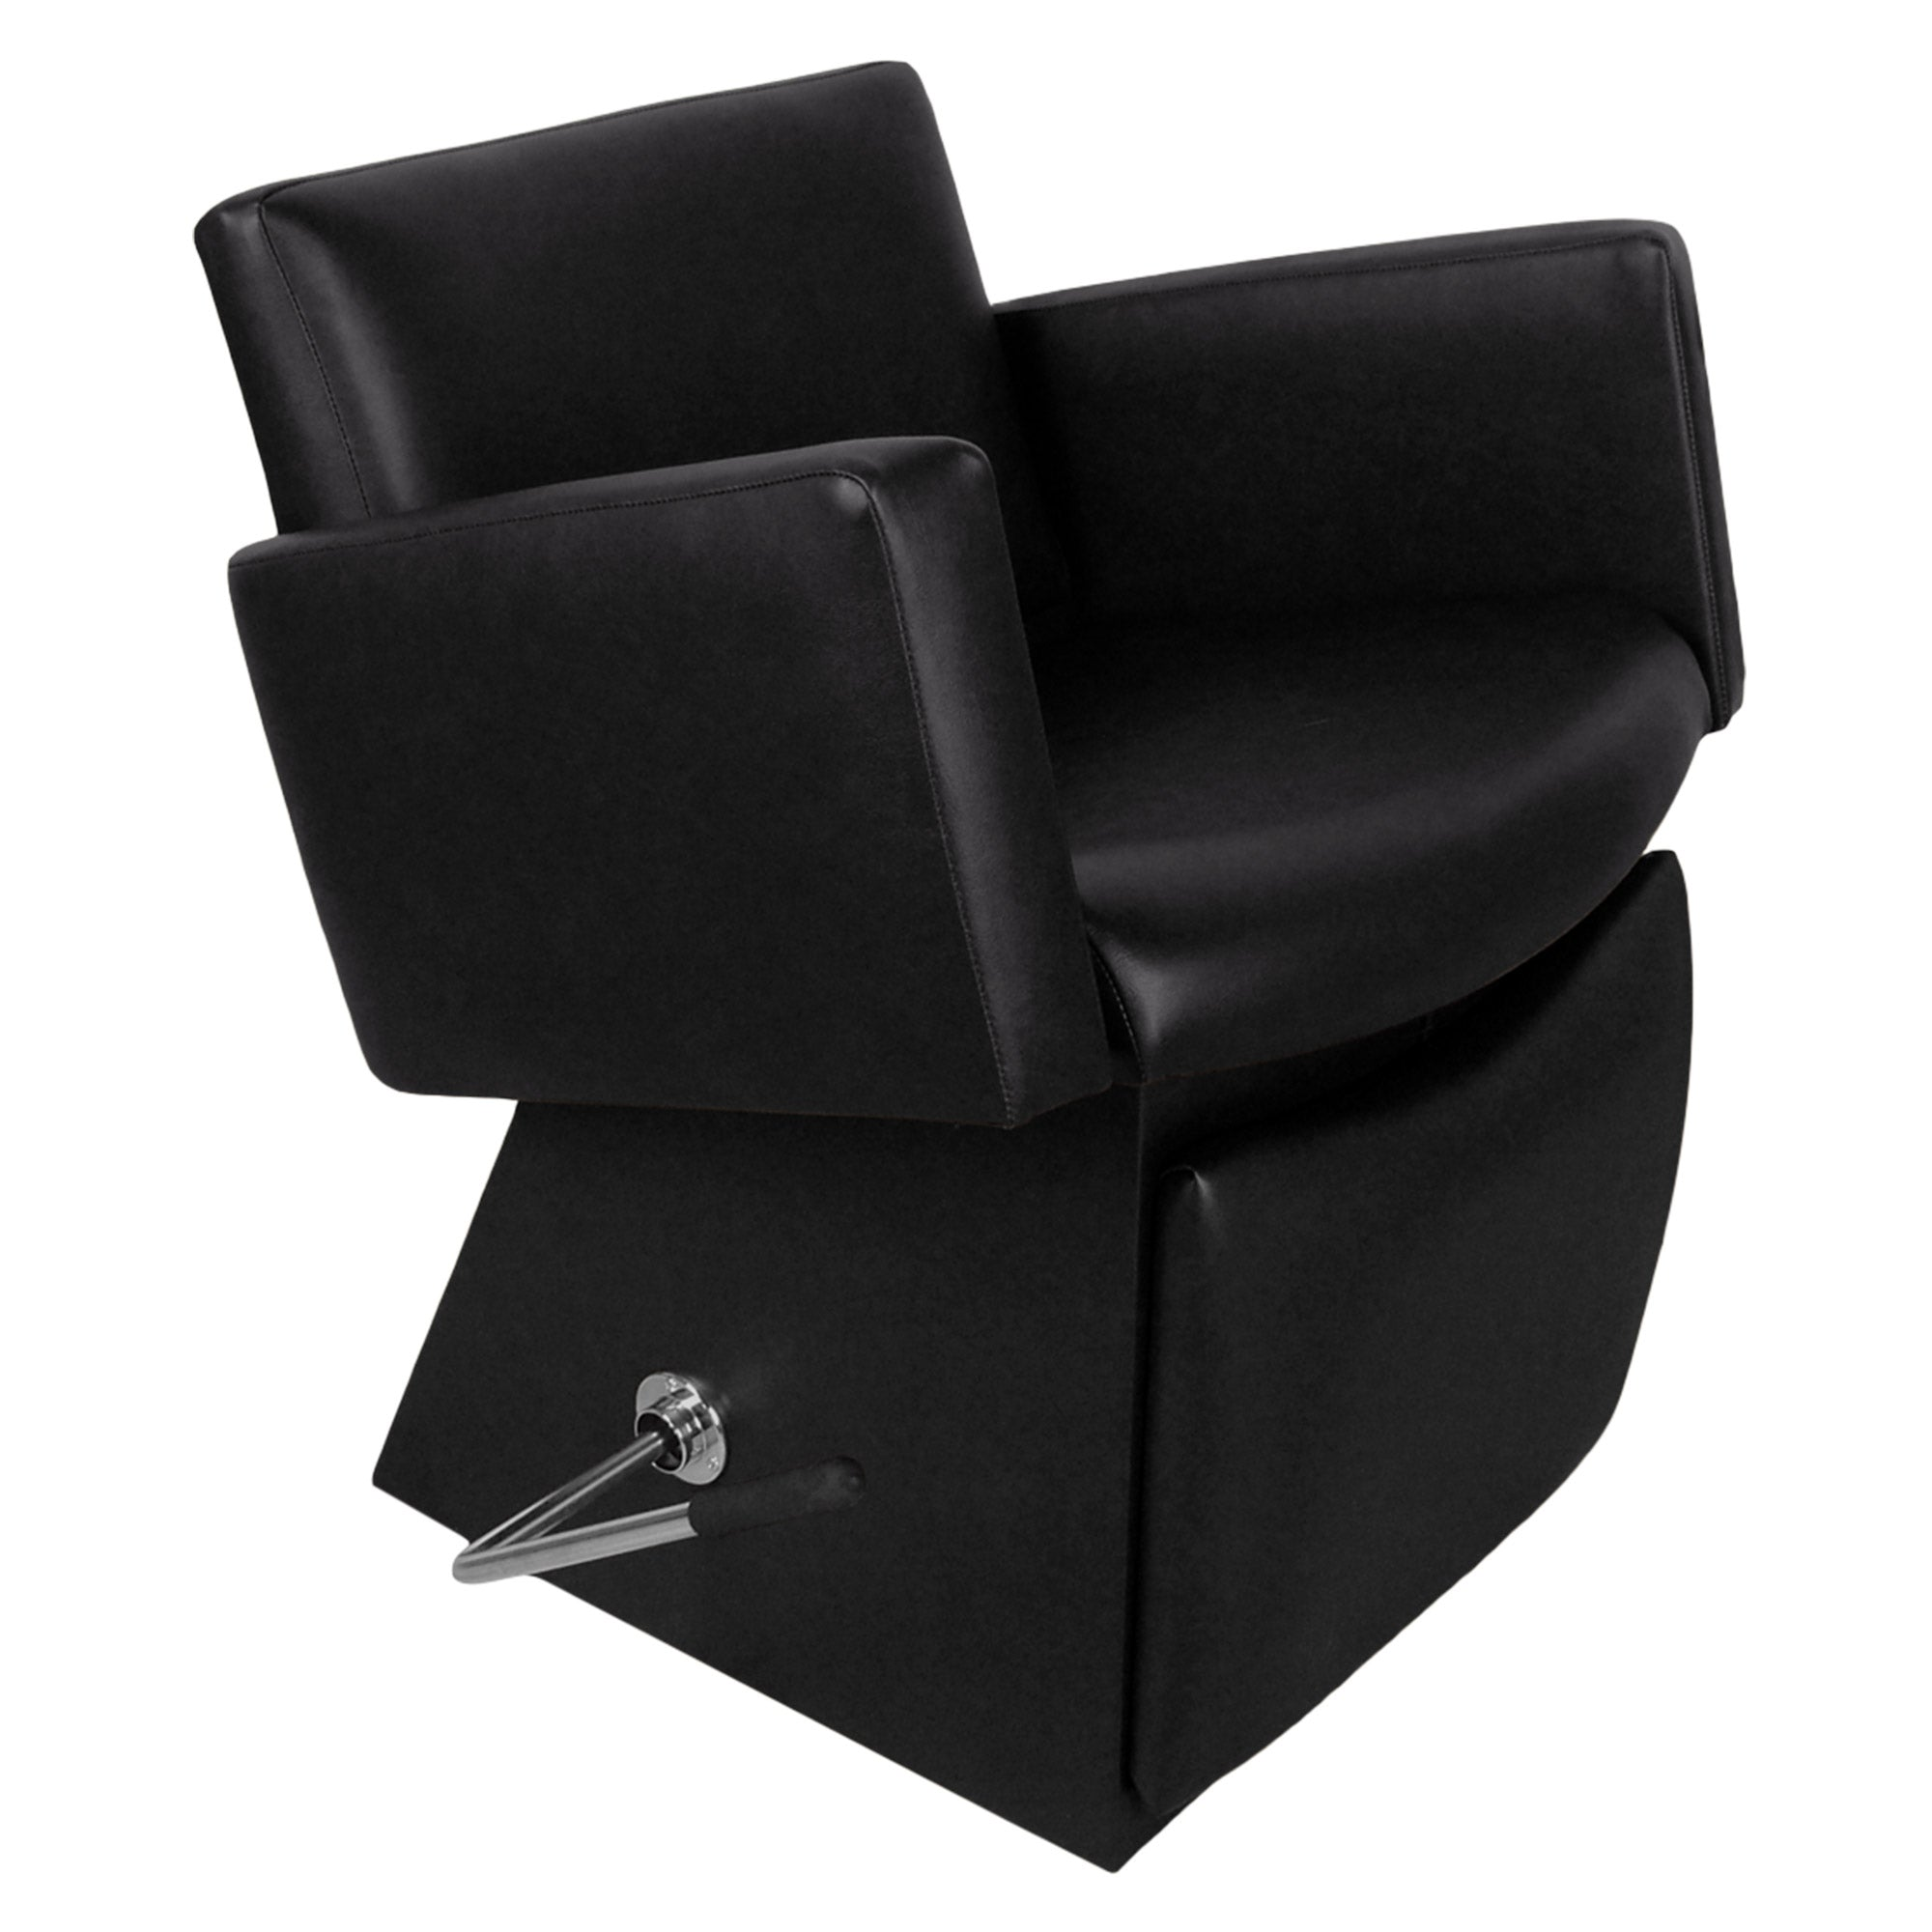 Cigno Shampoo Chair with Legrest - Collins